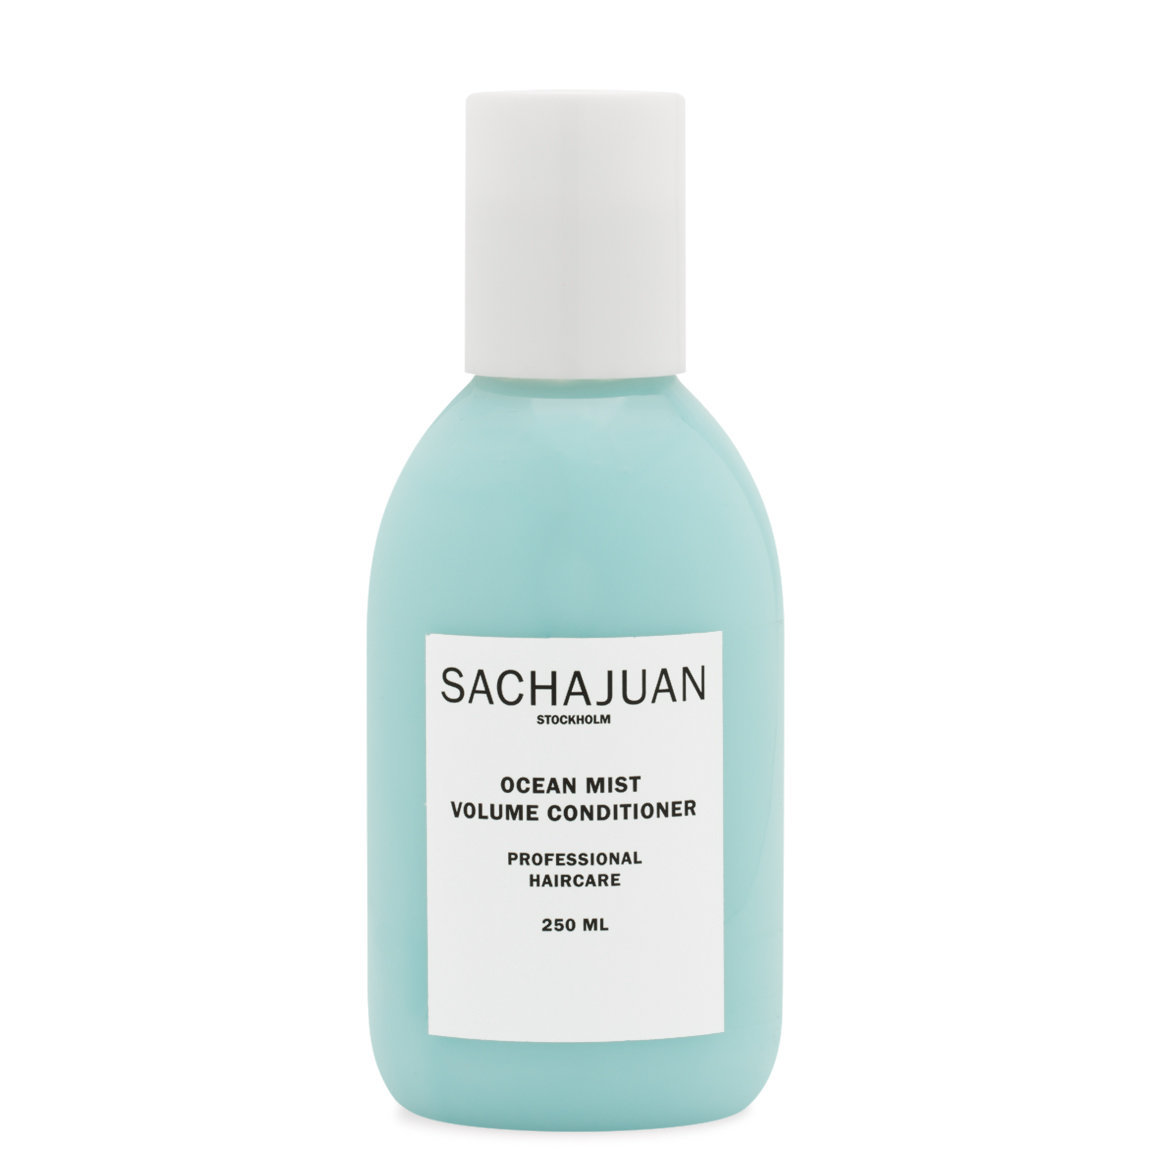 SACHAJUAN Ocean Mist Volume Conditioner product swatch.